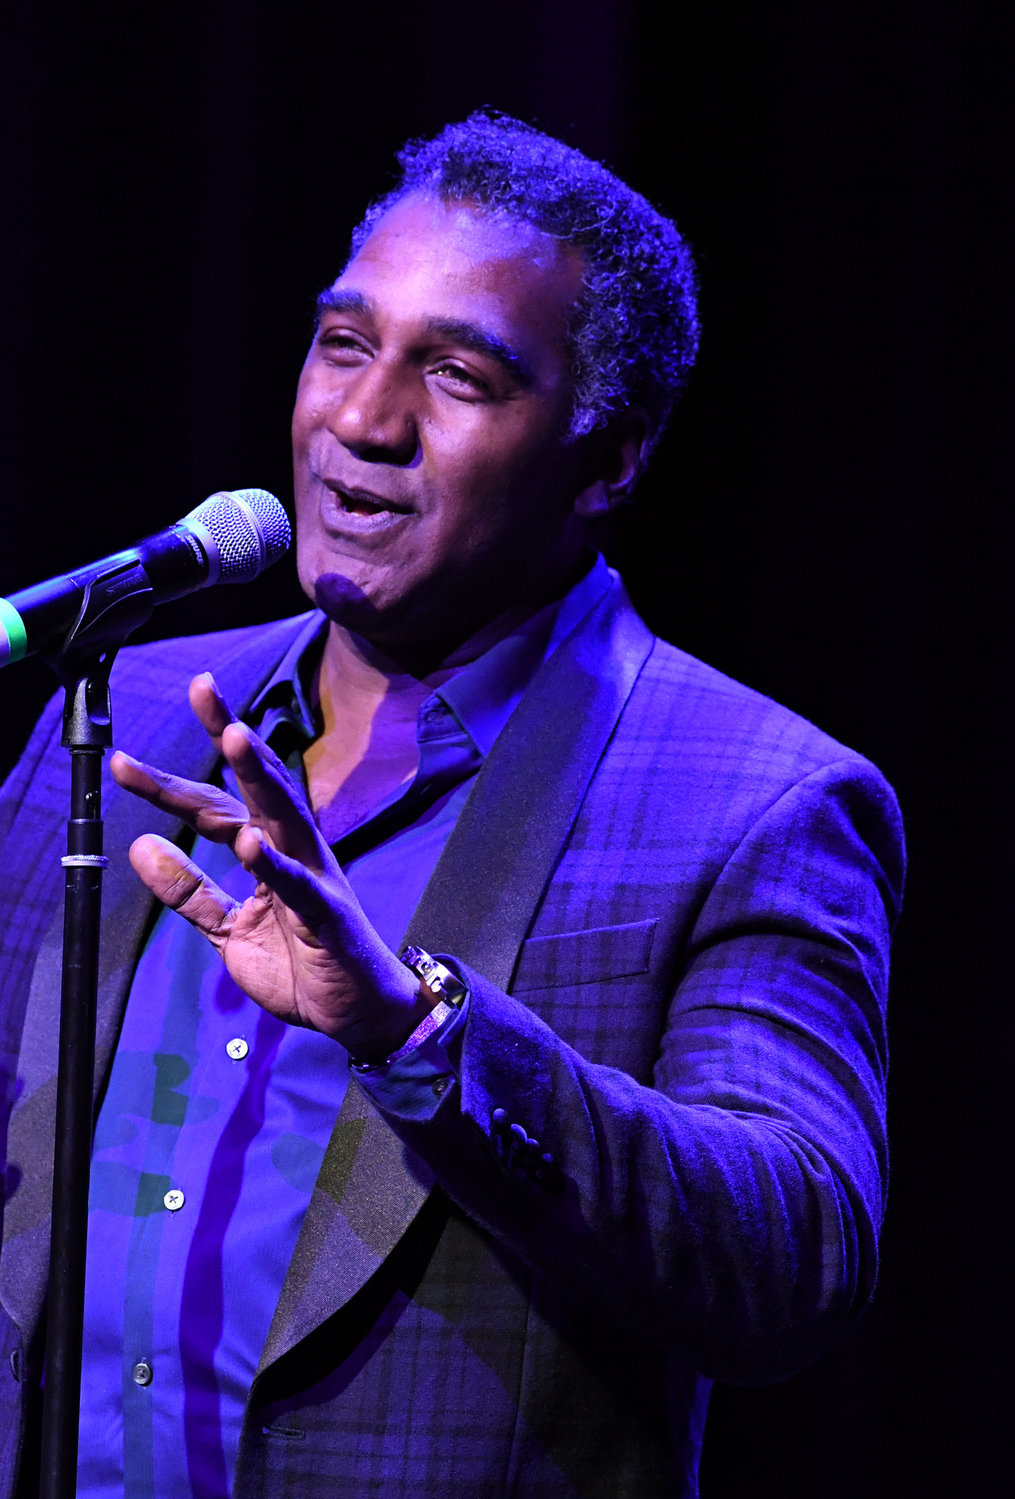 Broadway star Norm Lewis entertains the sold-out crowd.